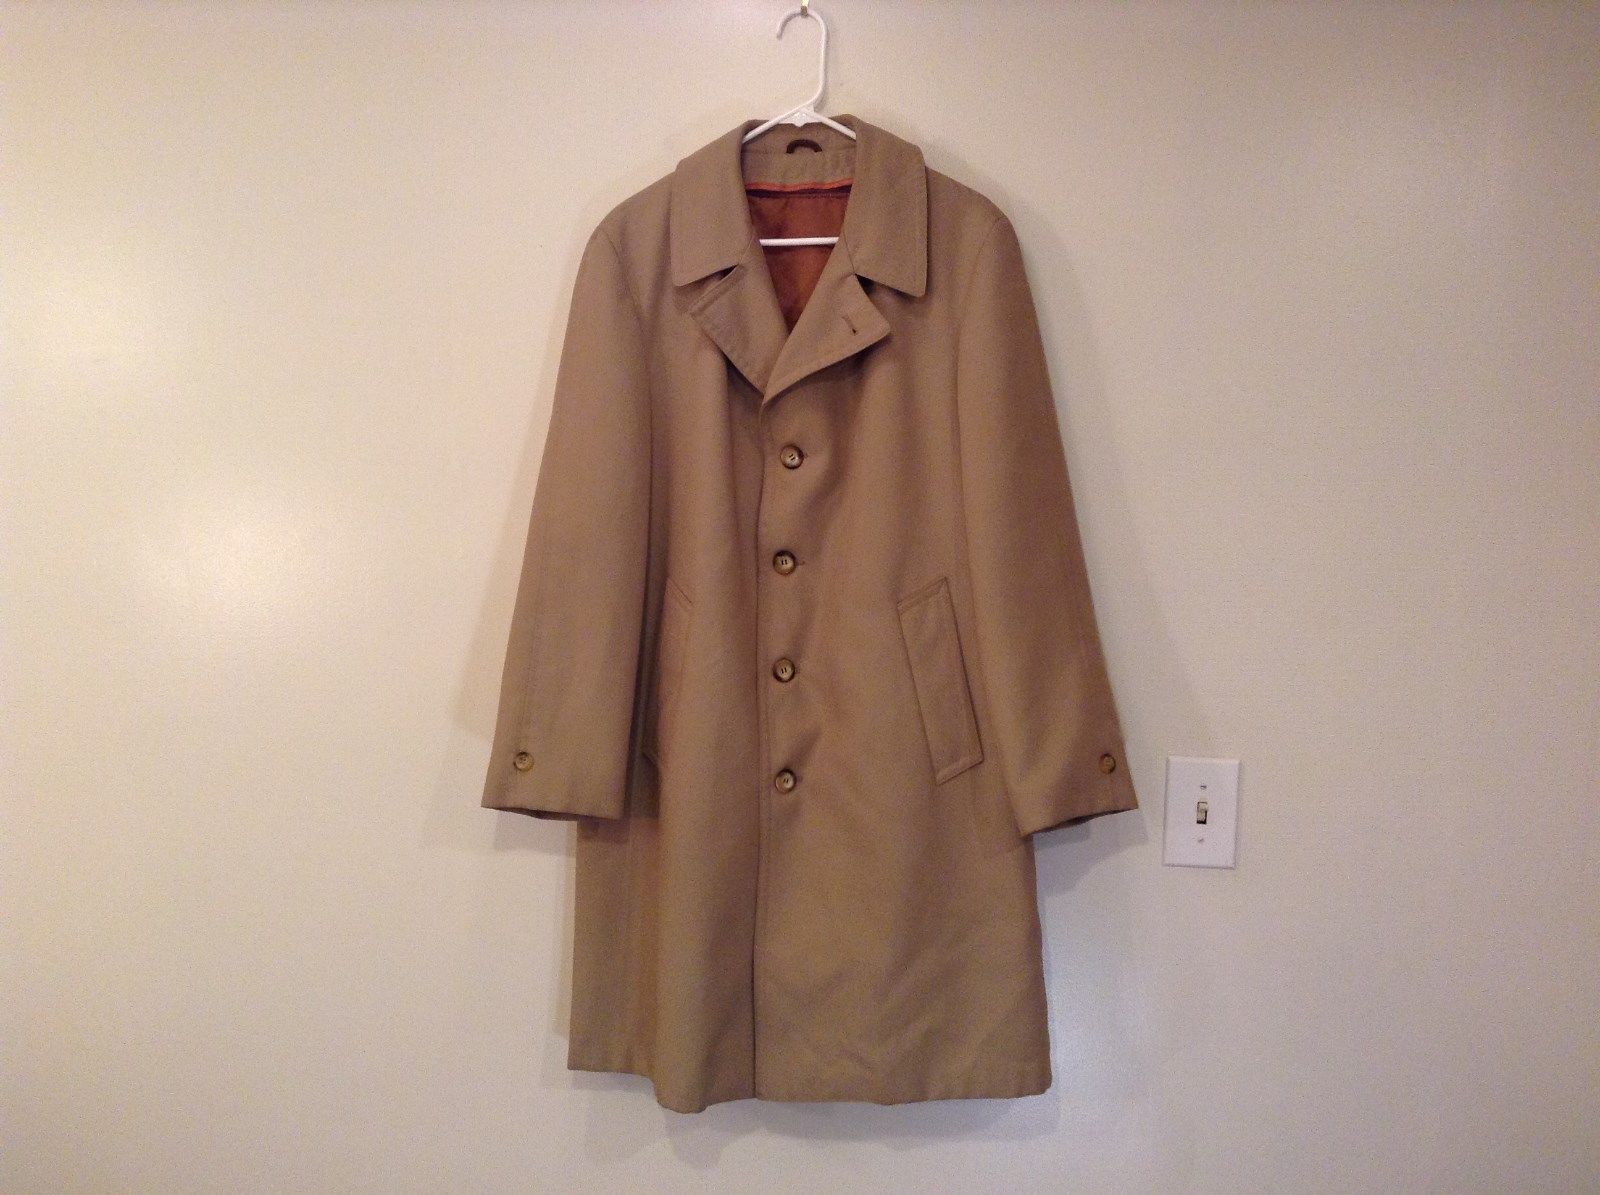 Sears The Mens Store Light Brown Two Layer Vintage Winter Coat Size 40 Reg